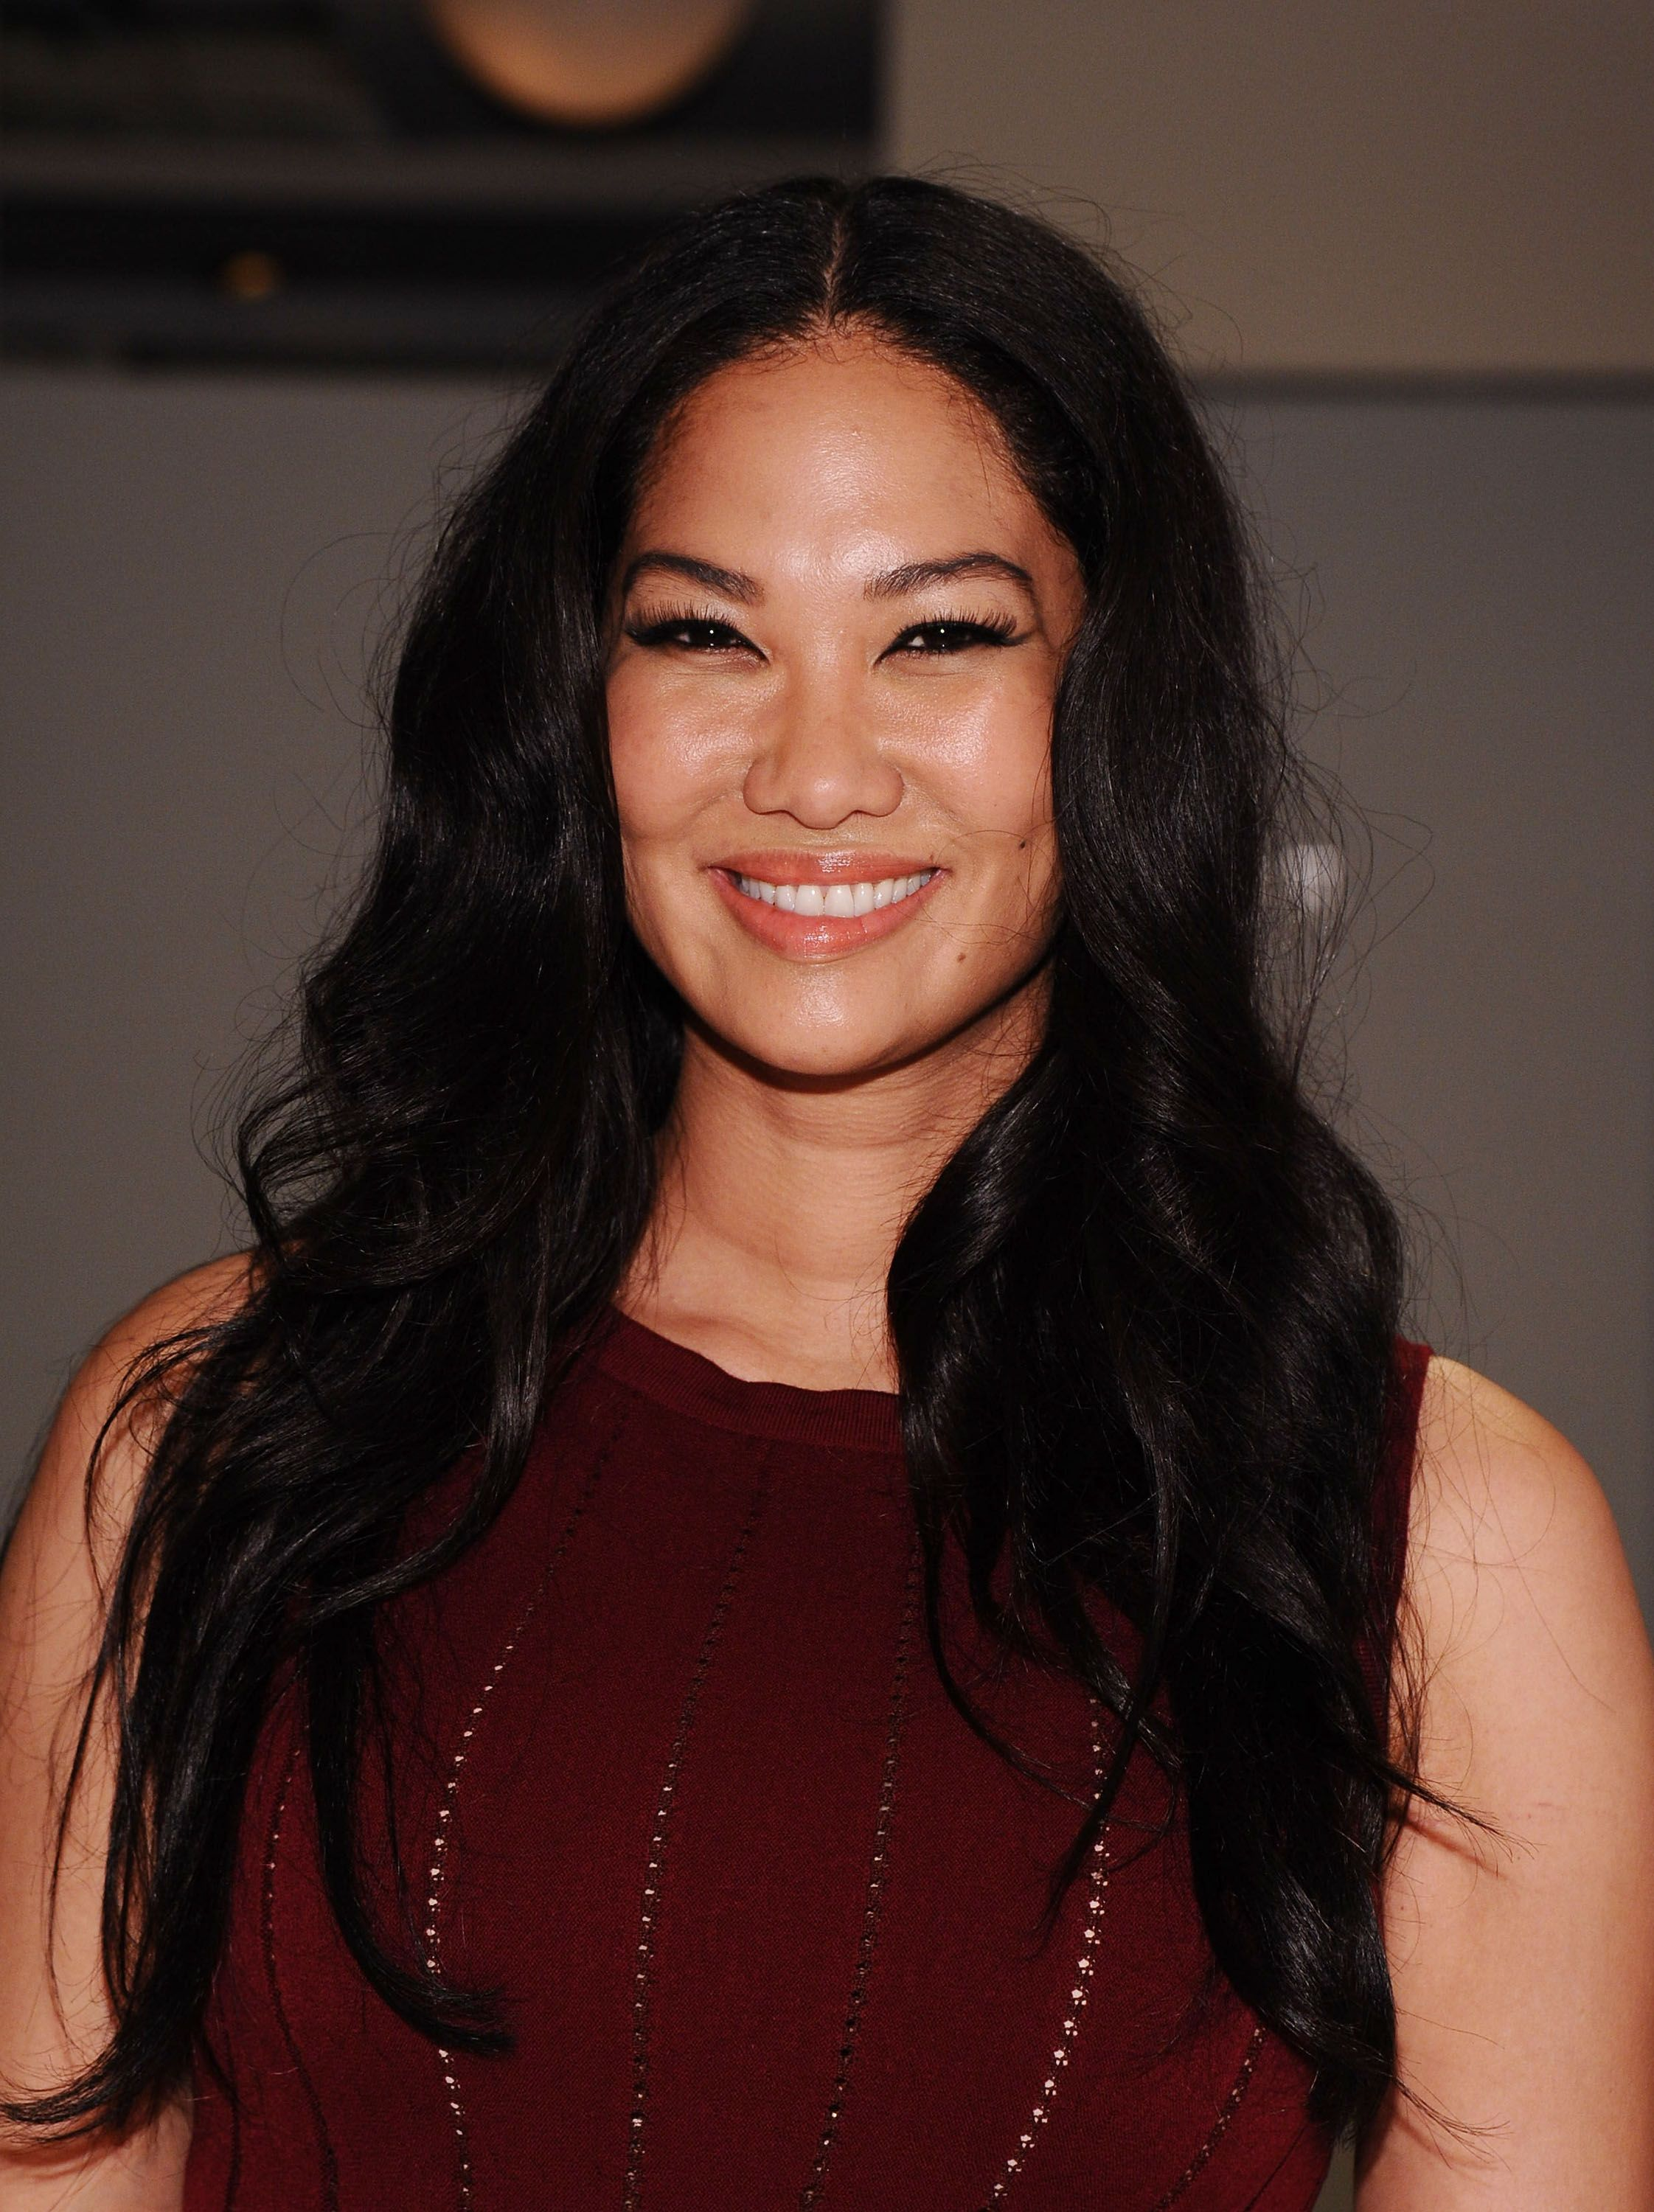 Kimora Lee Simmons at the Argyleculture By Russell Simmons fashion show during Mercedes-Benz Fashion Week Spring 2015 on September 5, 2014 in New York City. | Source: Getty Images